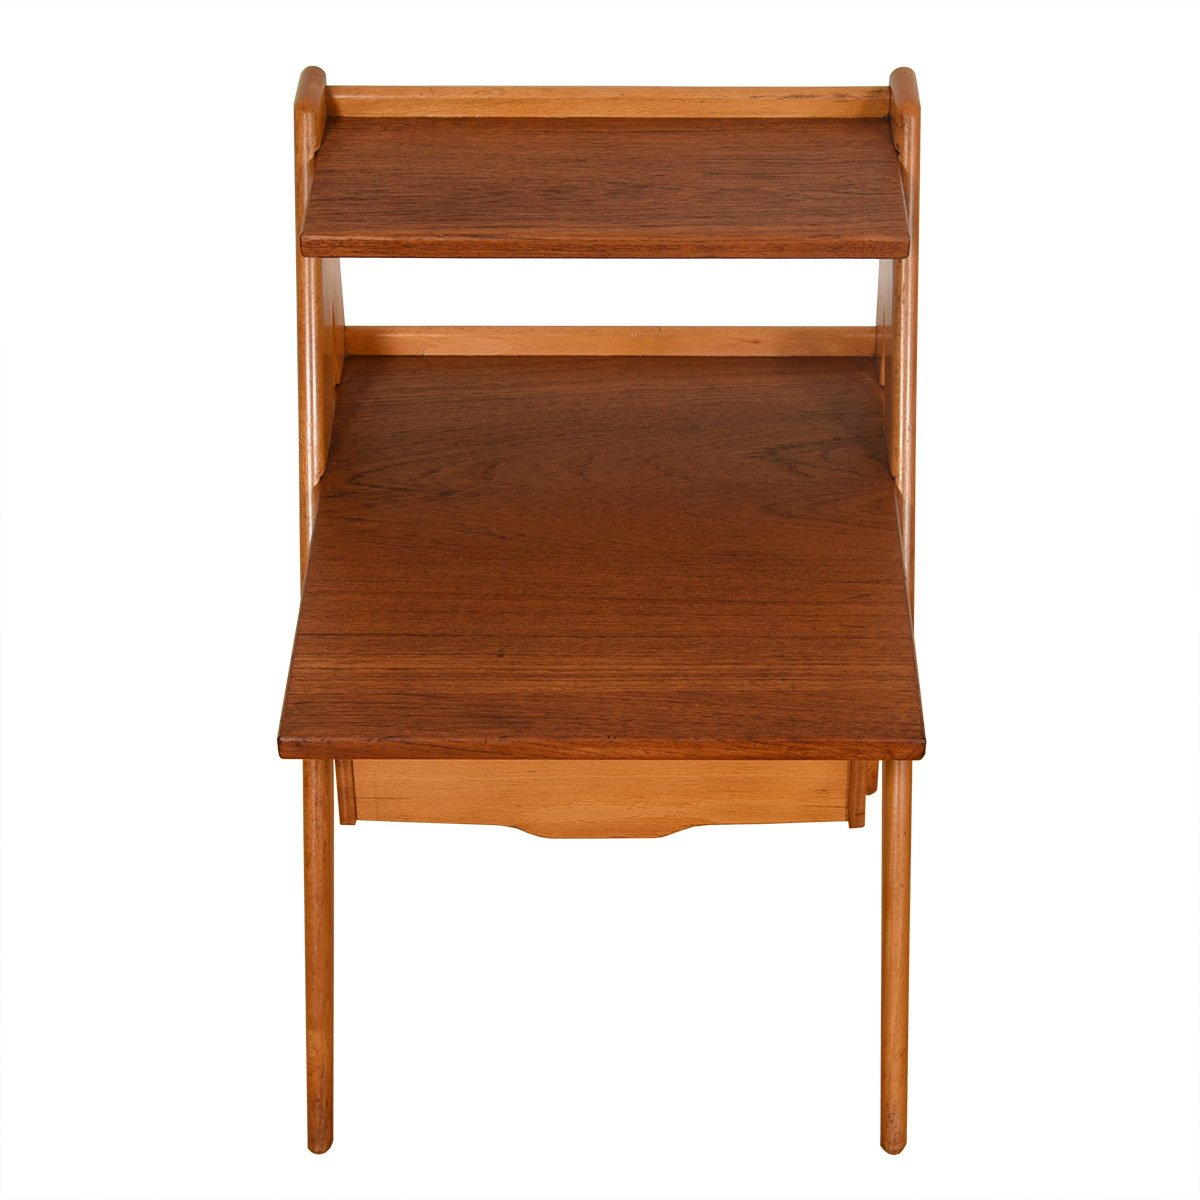 Swedish Bi-Level End Table with Hairpin Legs